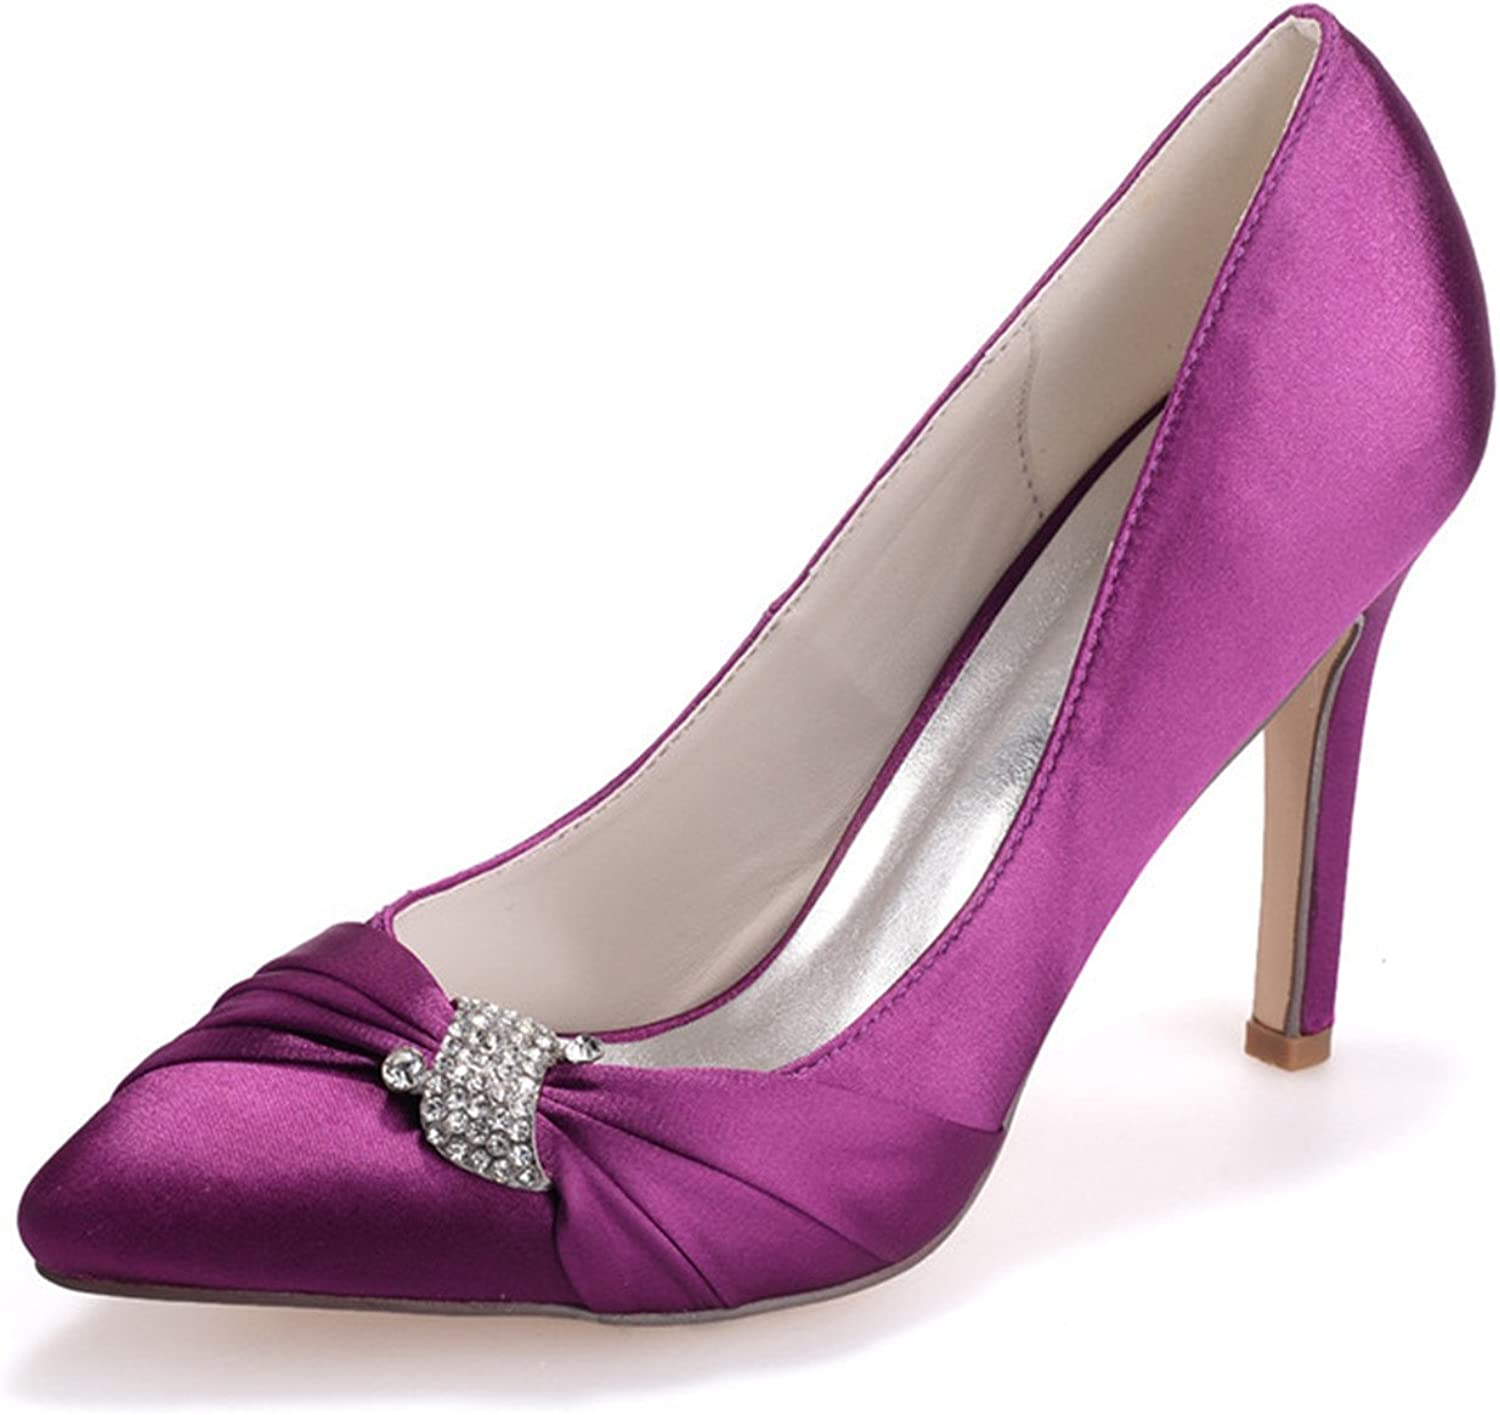 Uryouthstyle Beaded Closed Toe Pumps High Heels Stylish Prom Dress shoes